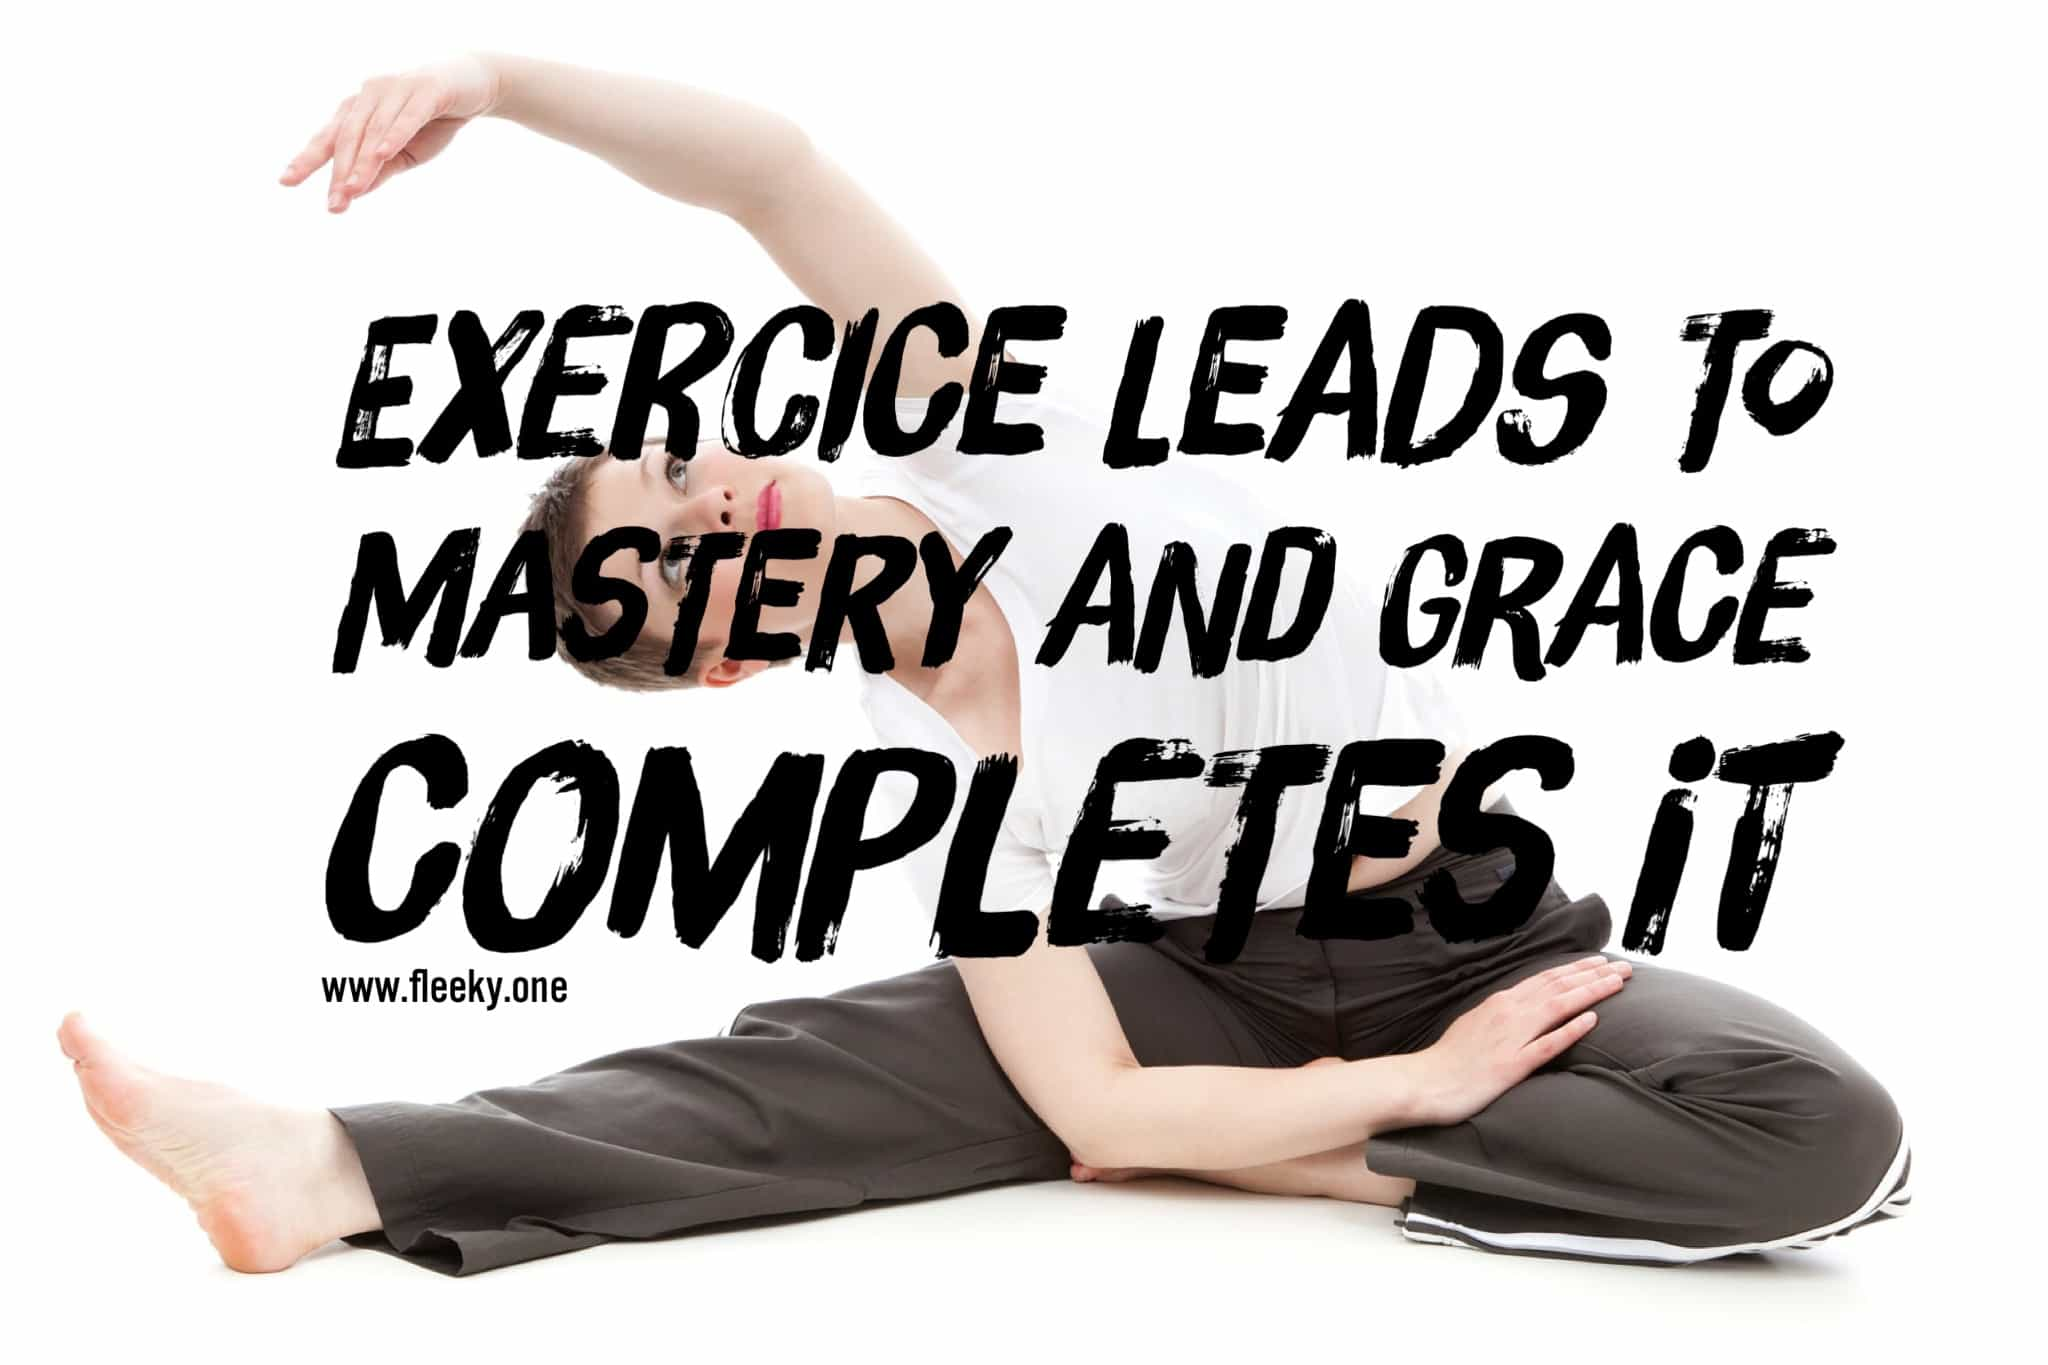 Exercice and mastery, fitness and grace